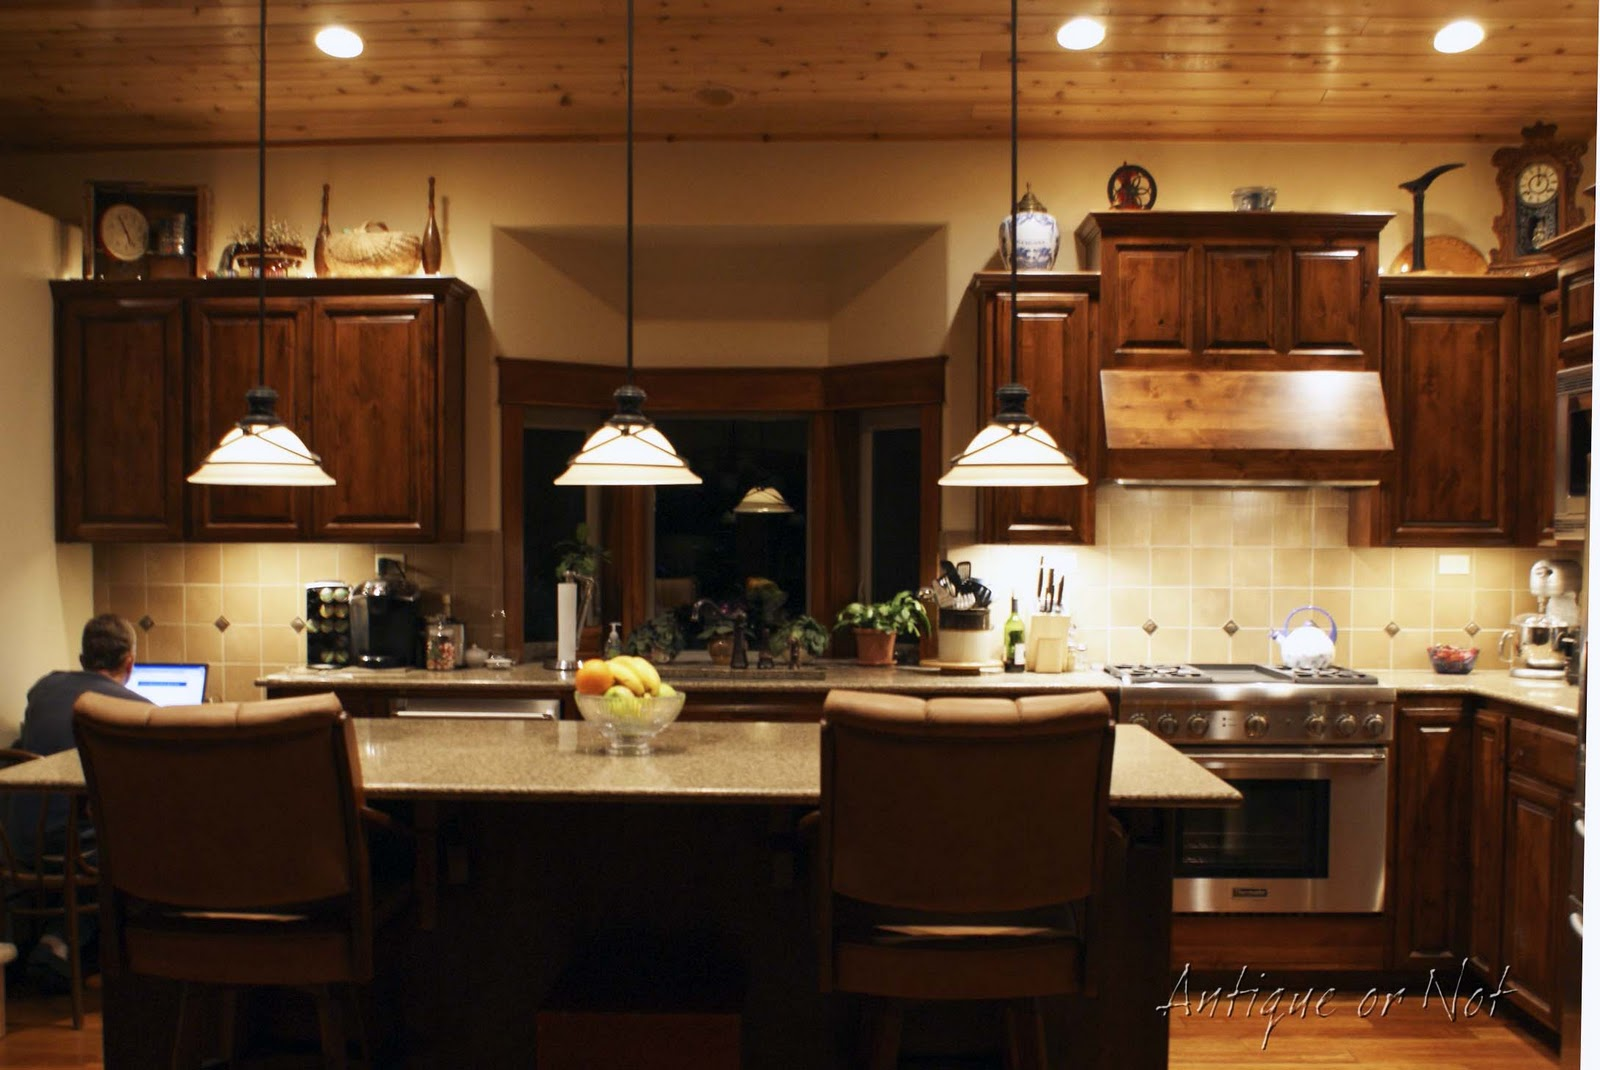 Antique Or Not Decorating Above Your Cabinets